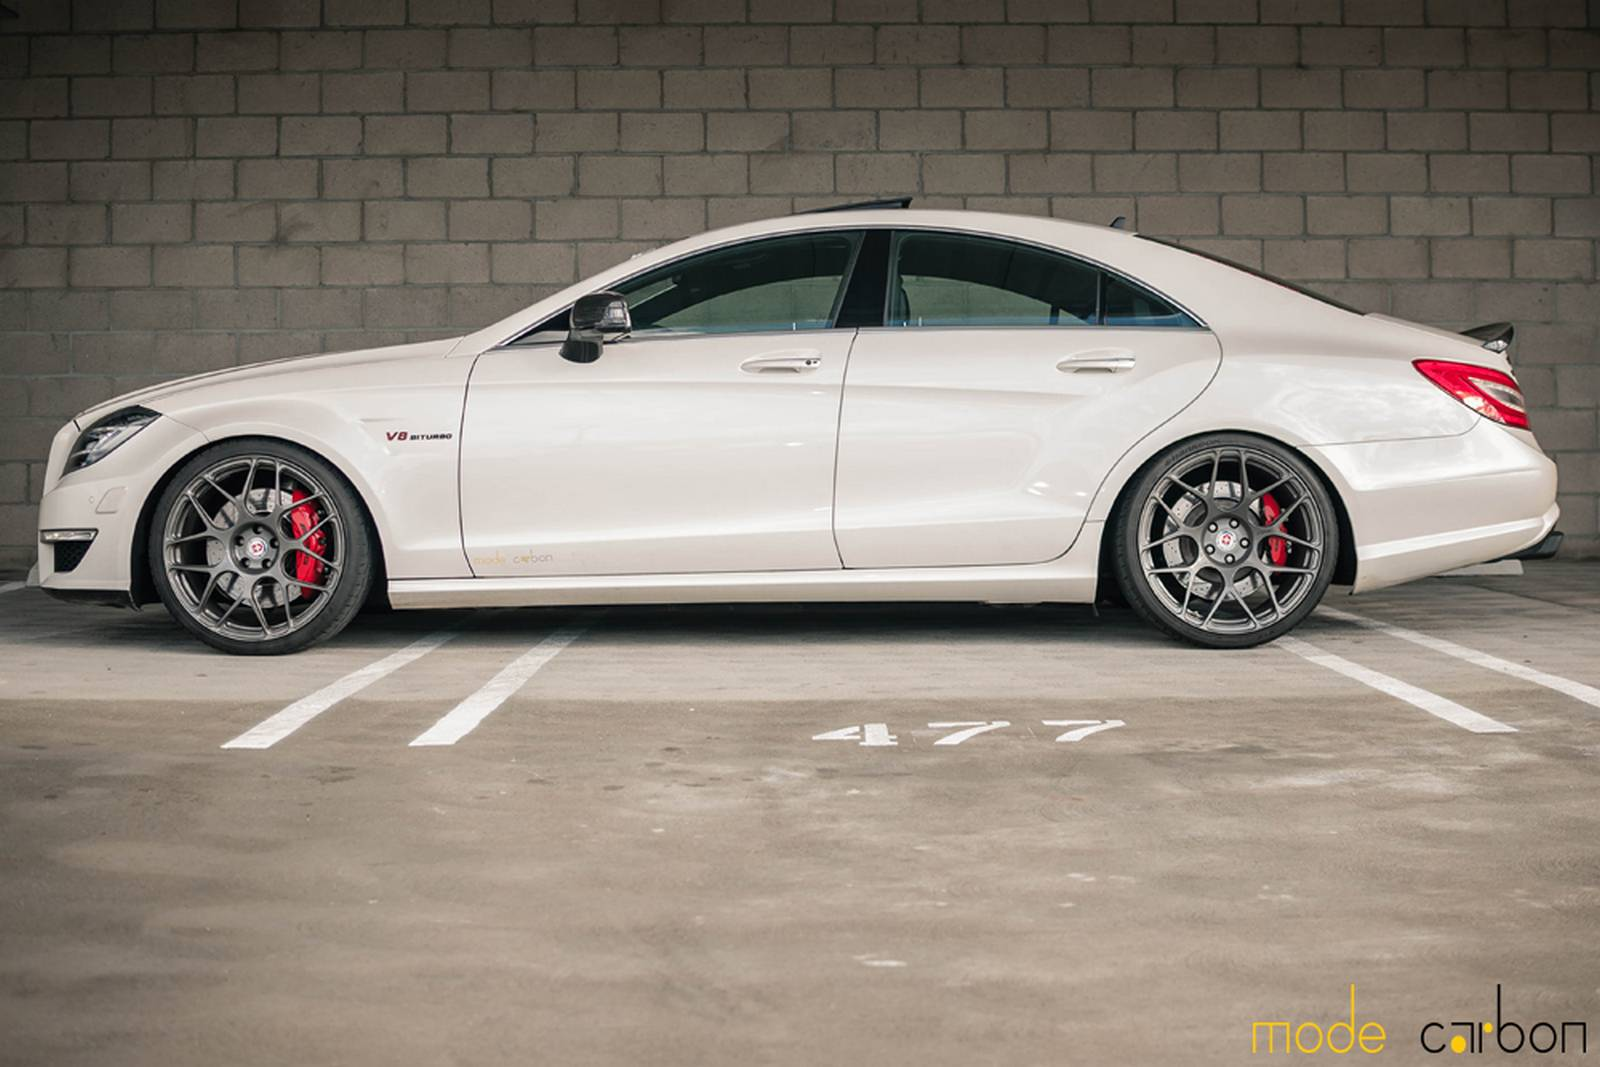 Mode carbon mercedes benz cls 63 amg gtspirit for 2013 mercedes benz cls 63 amg